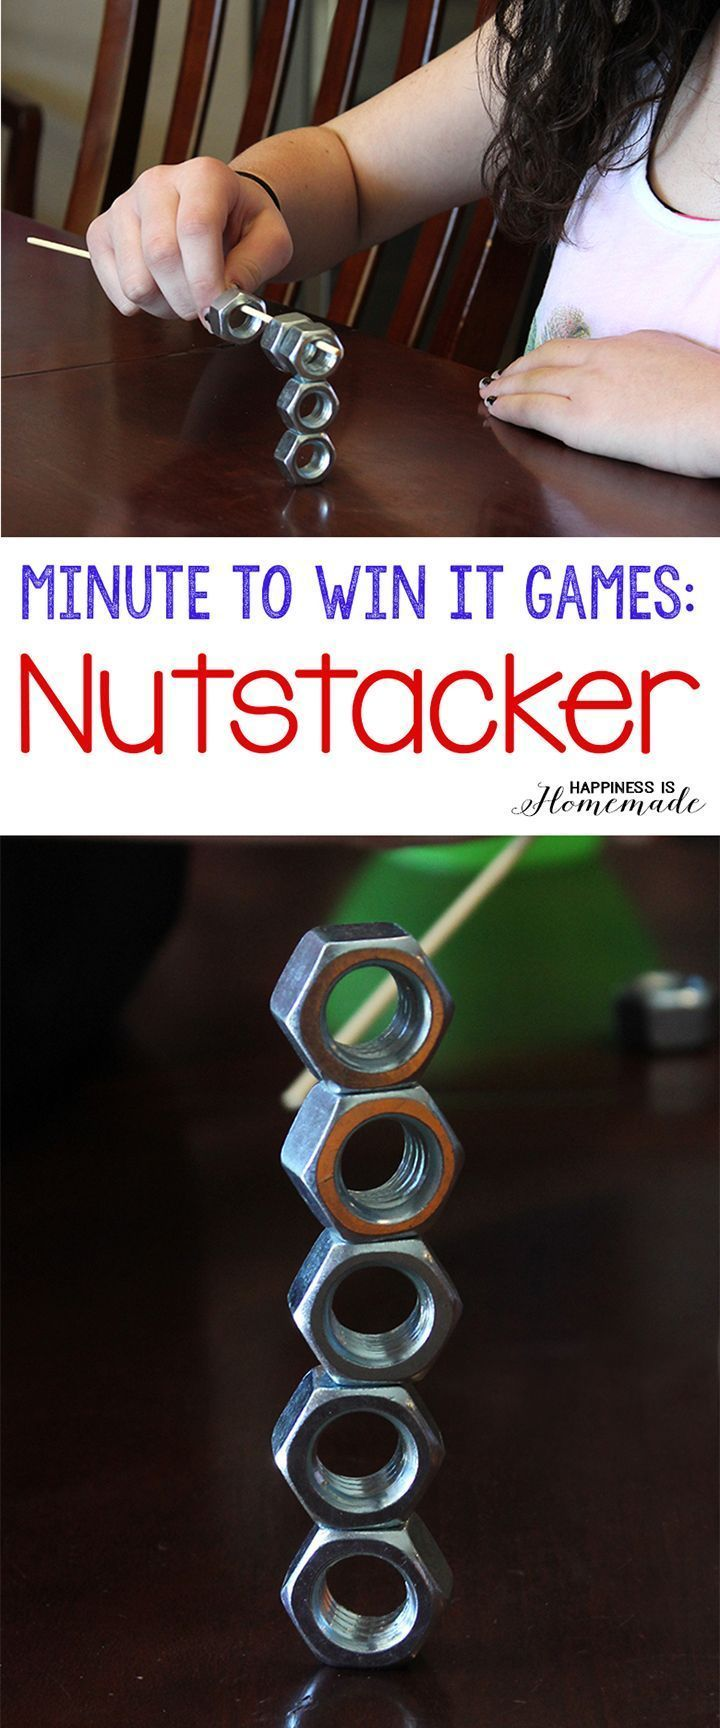 These 10 Minute to Win It games were perfect for all ages  challenging enough for older children, but easy enough for everyone to join in the fun! Hysterical silly fun for everyone! #CampingGames